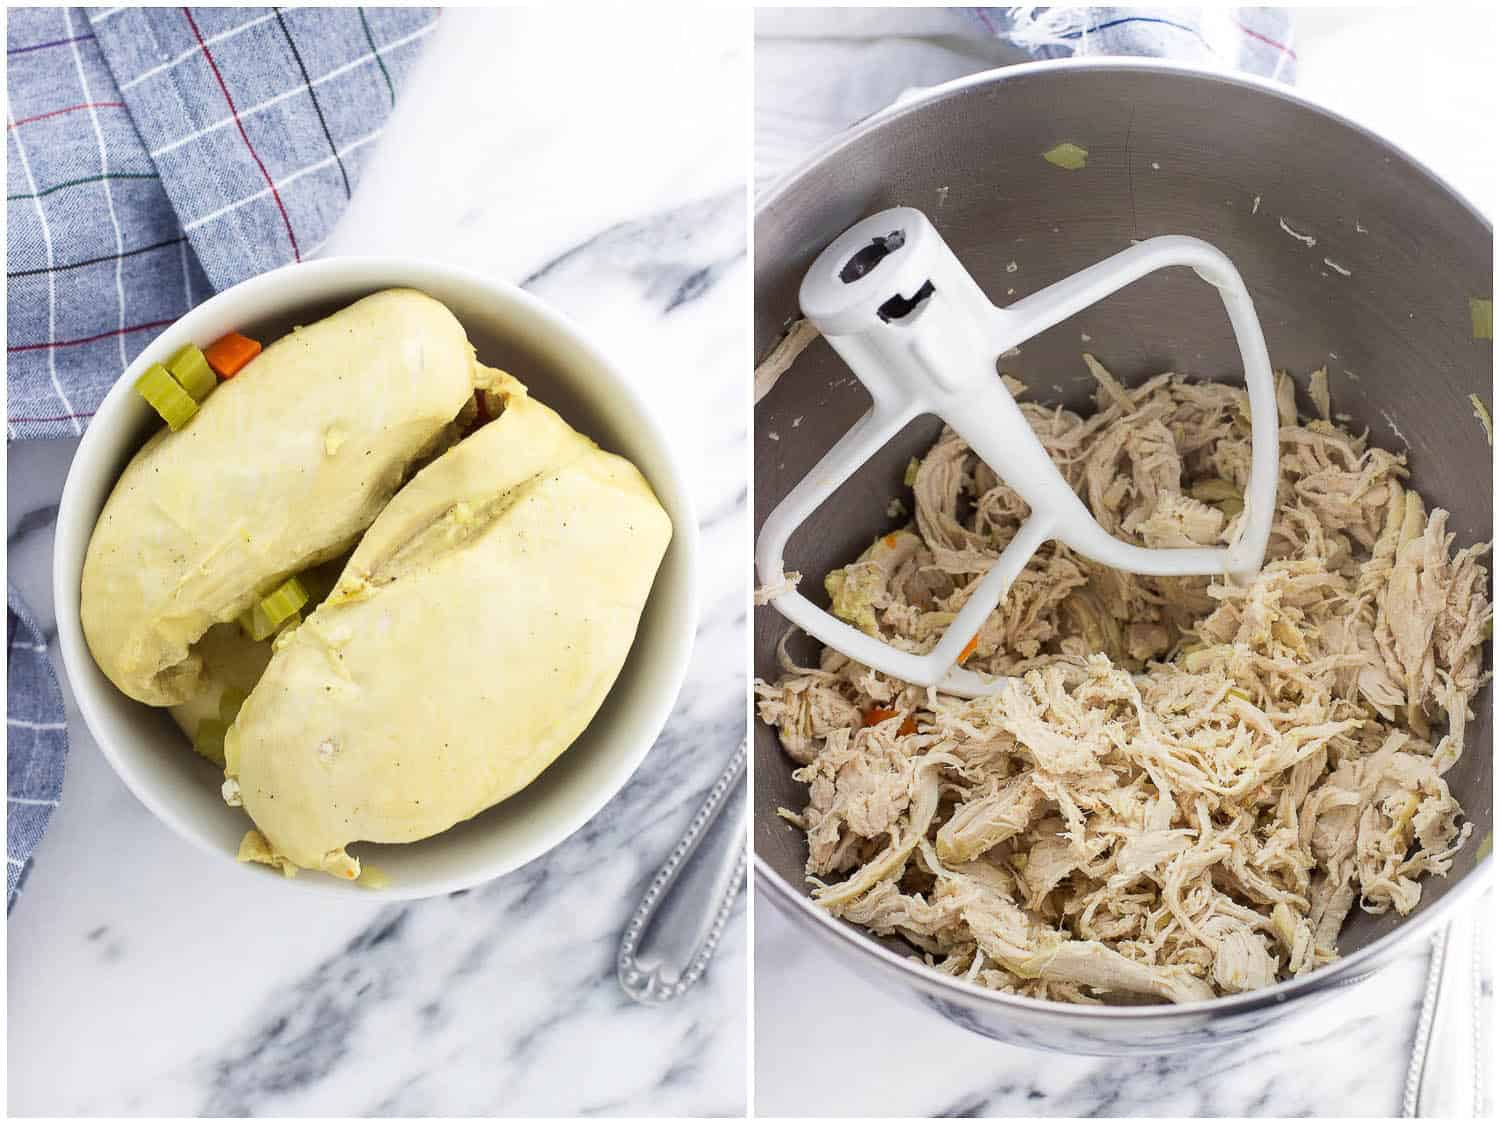 Cooked chicken breasts in a bowl (left) and shredded chicken in a stand mixer bowl with a paddle attachment (right).